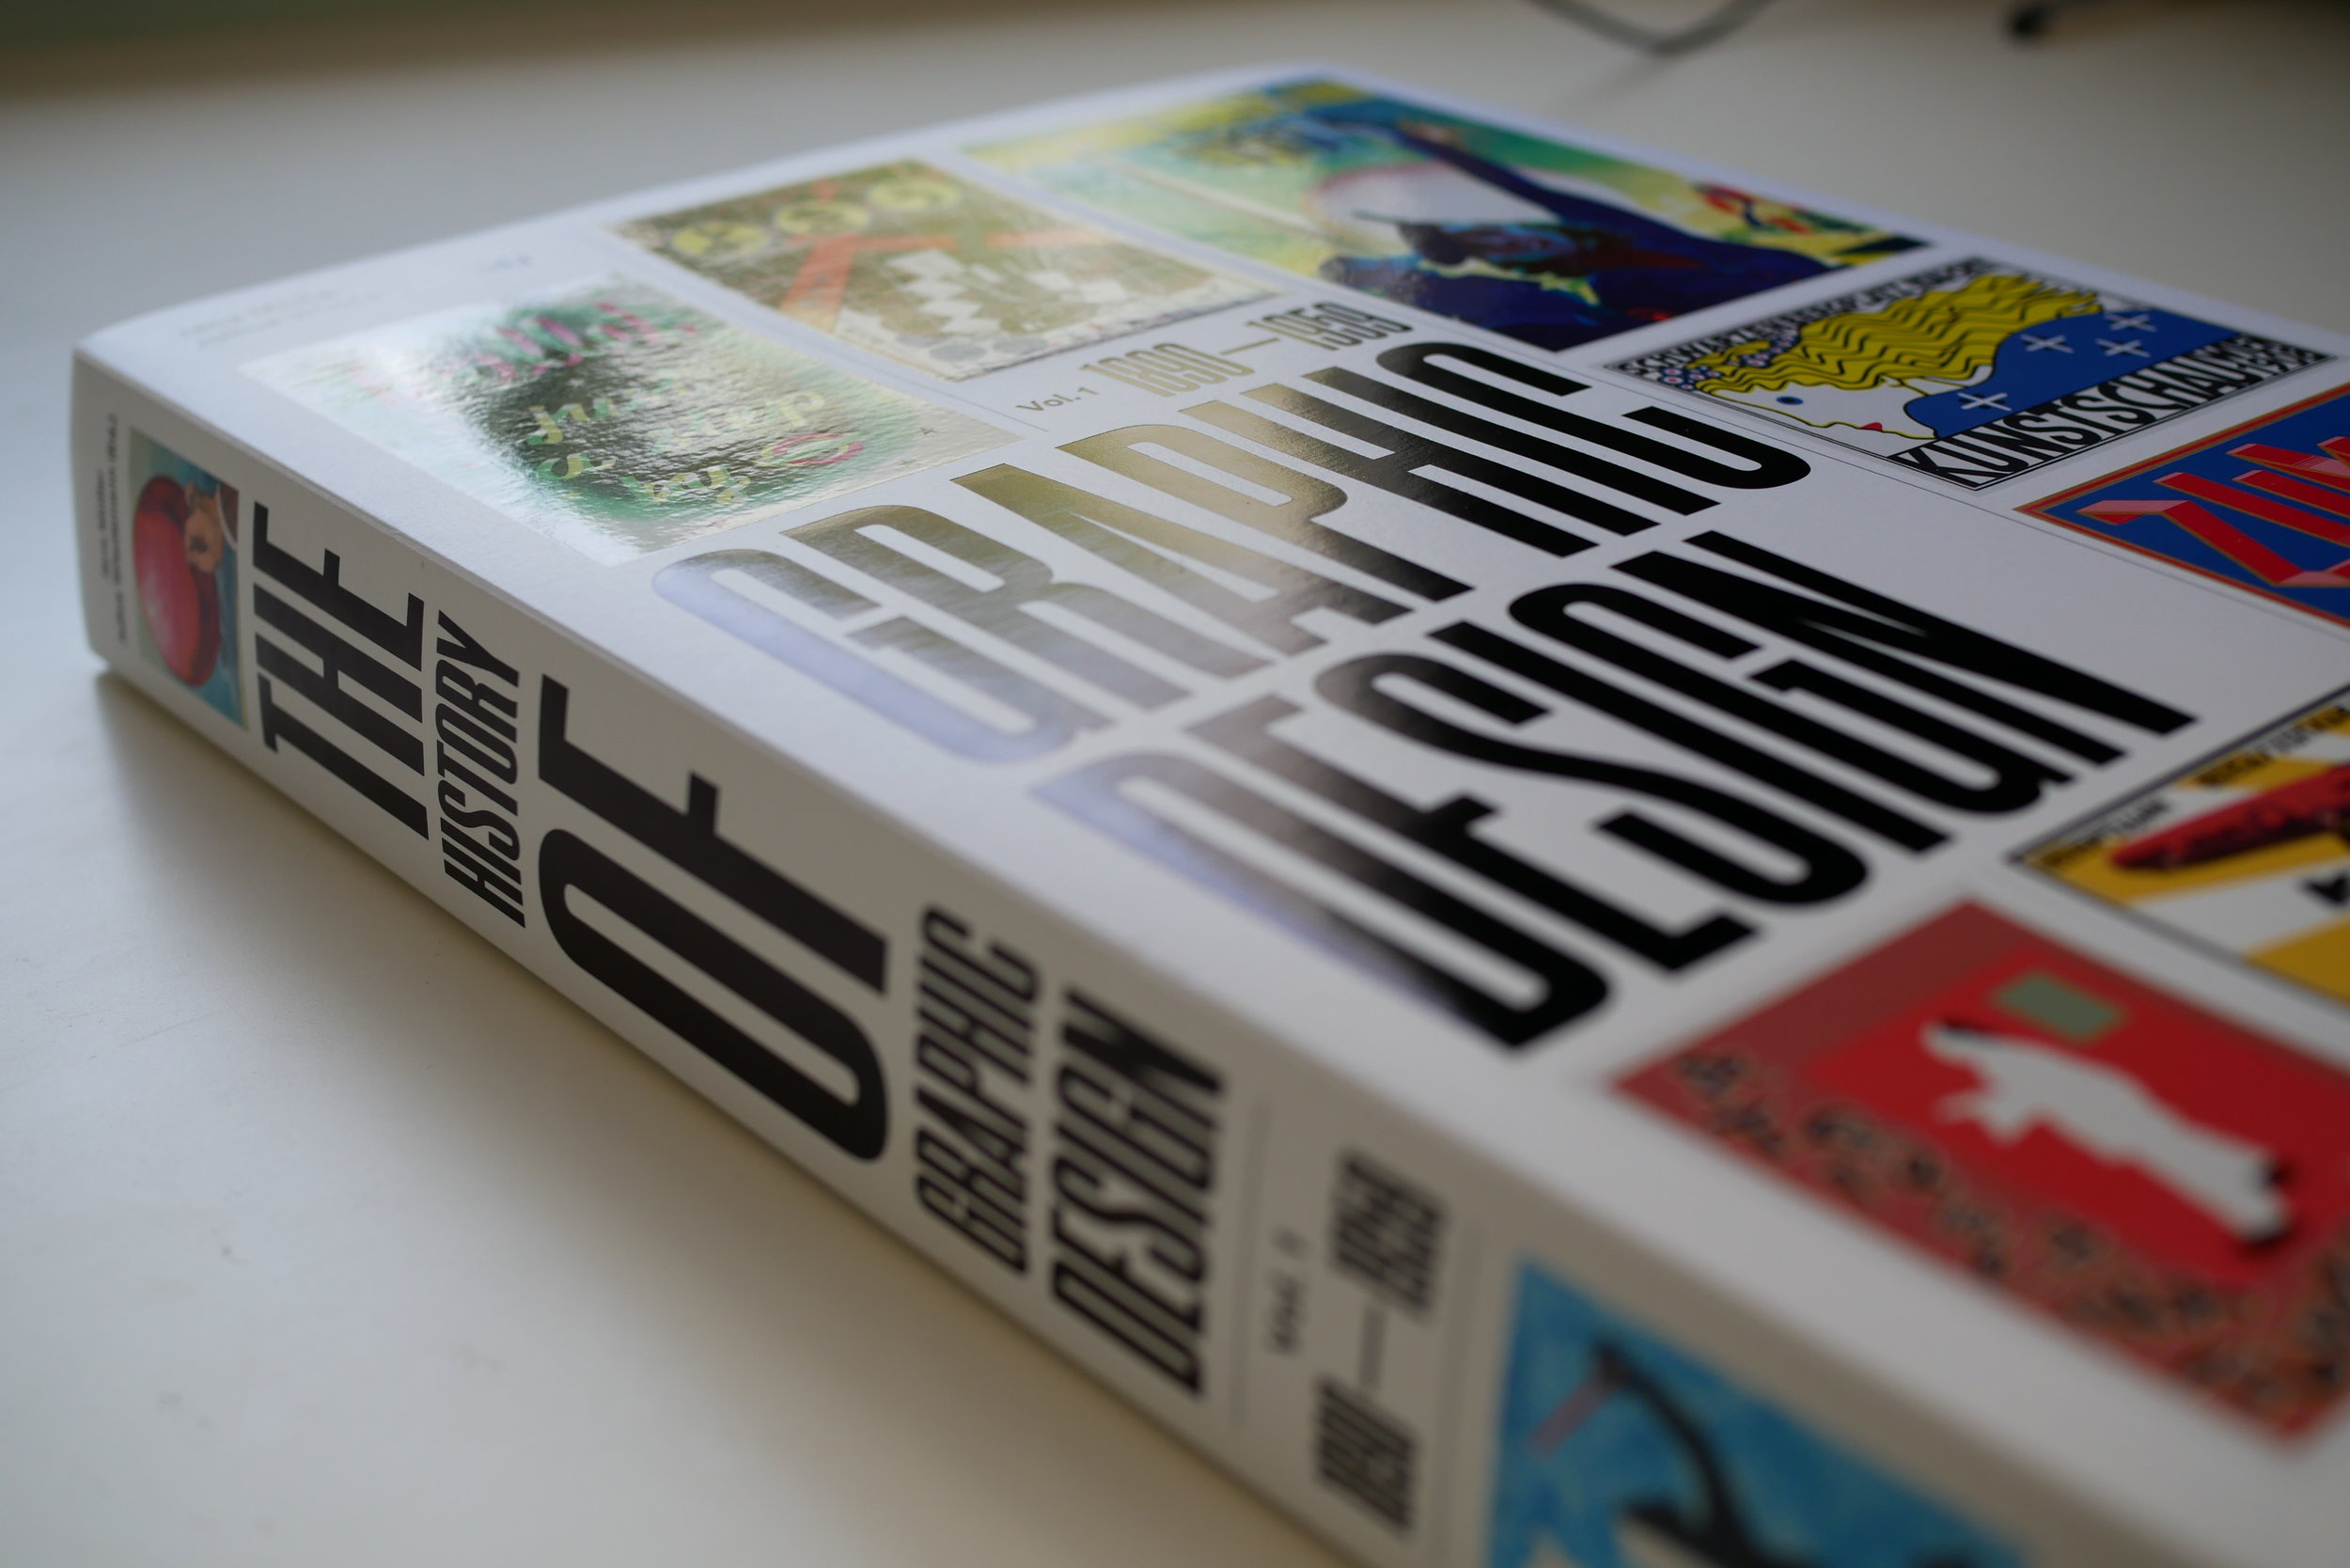 The History of Graphic Design Volume 1: 1890-1959